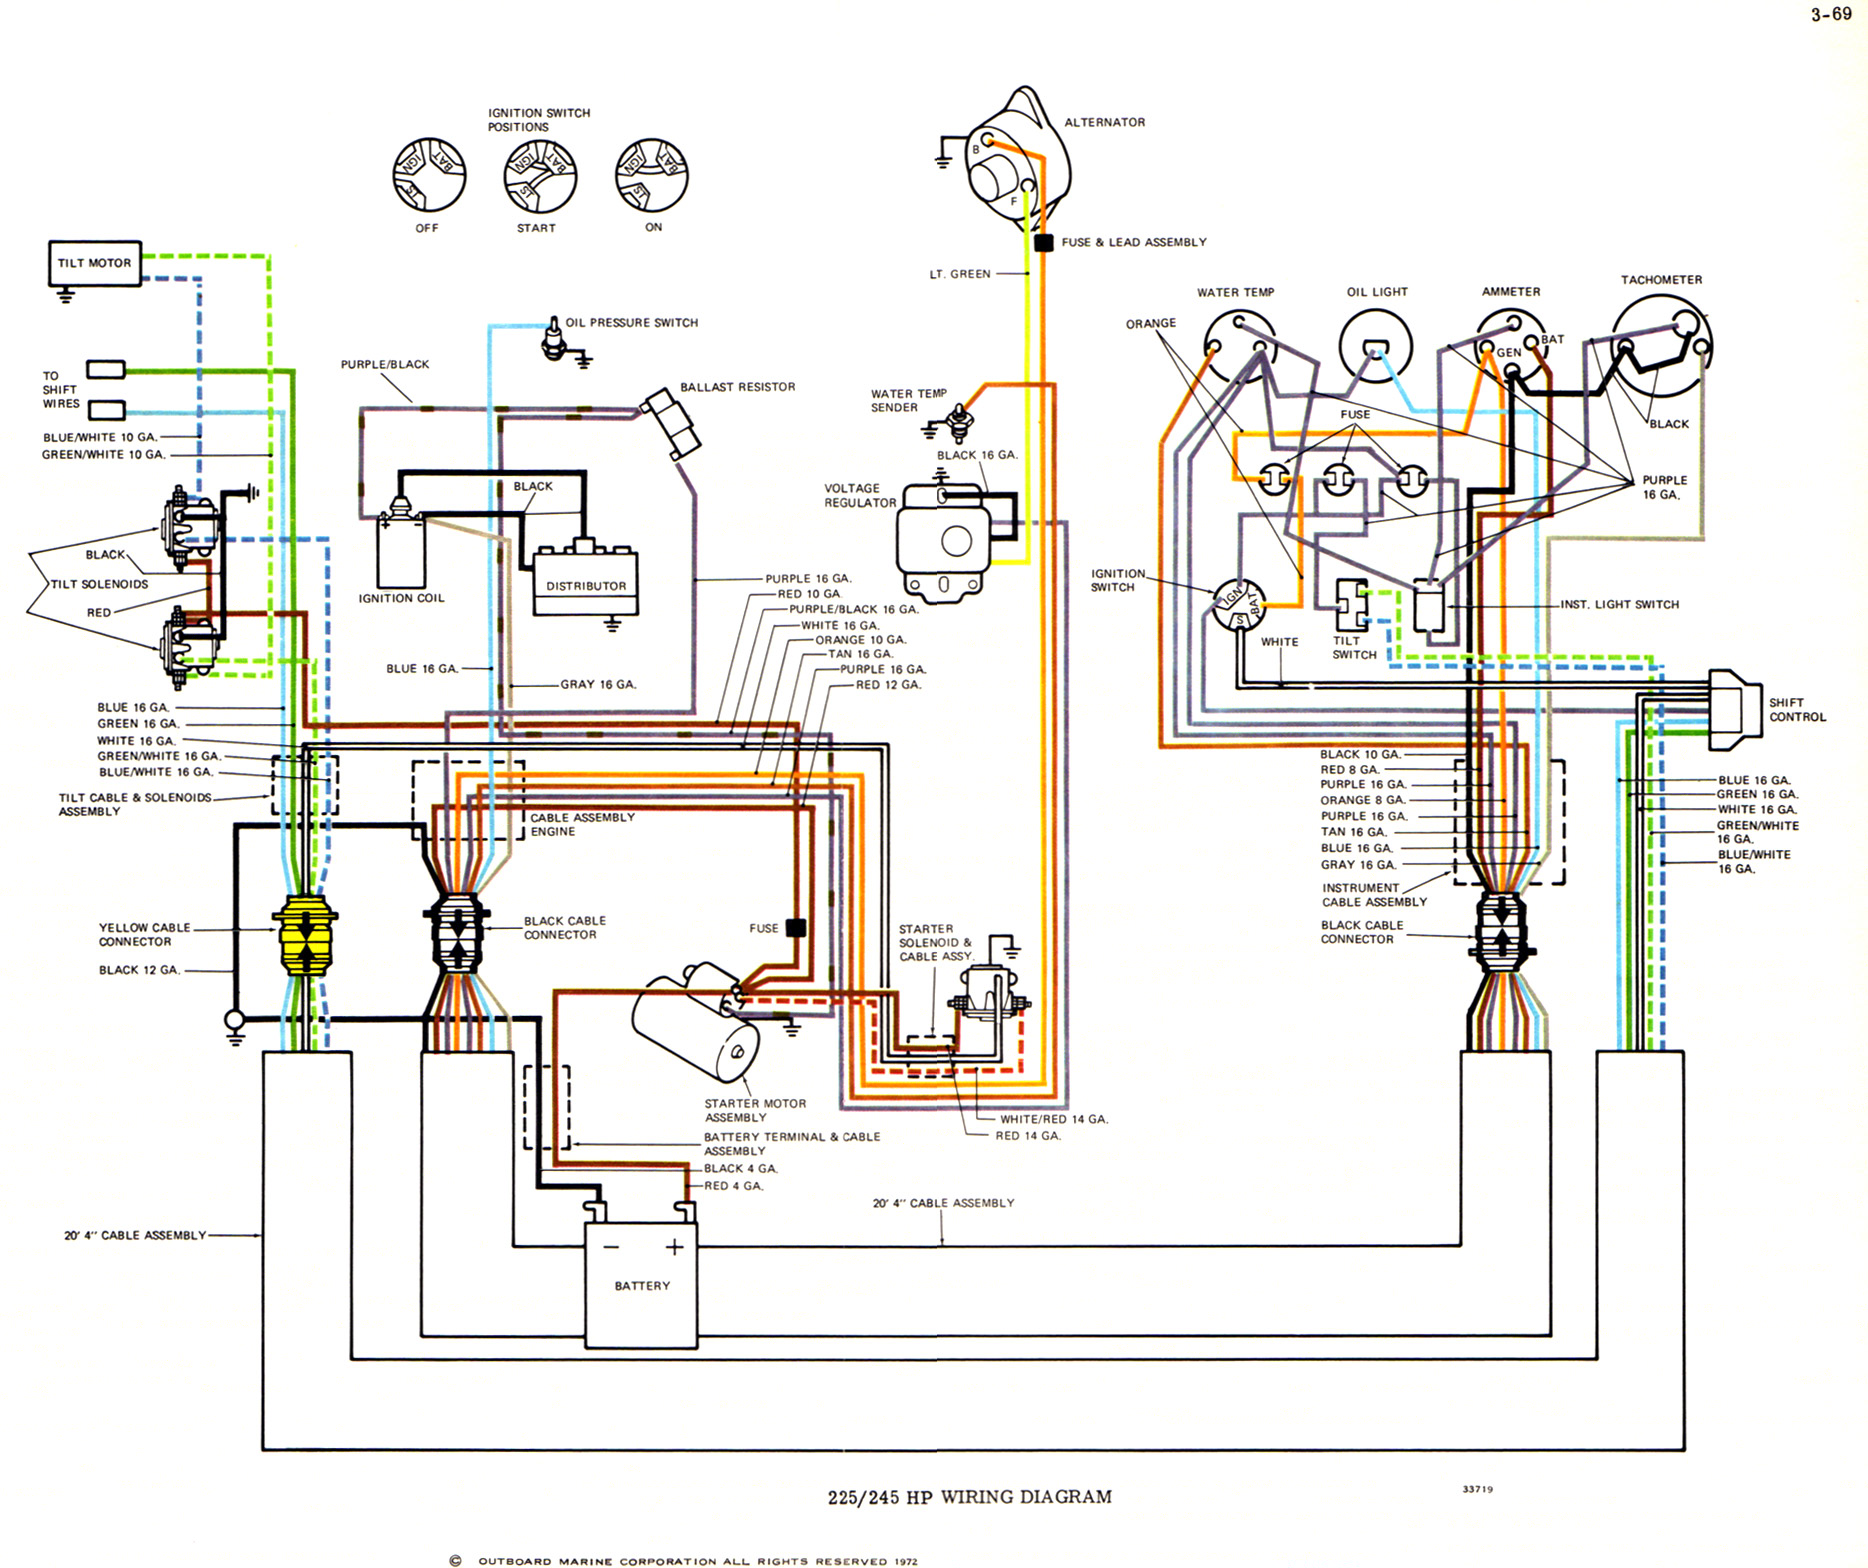 yamaha 115 outboard wiring diagram example wiring diagram yamaha outboard color codes yamaha outboard wiring diagram gauges #14